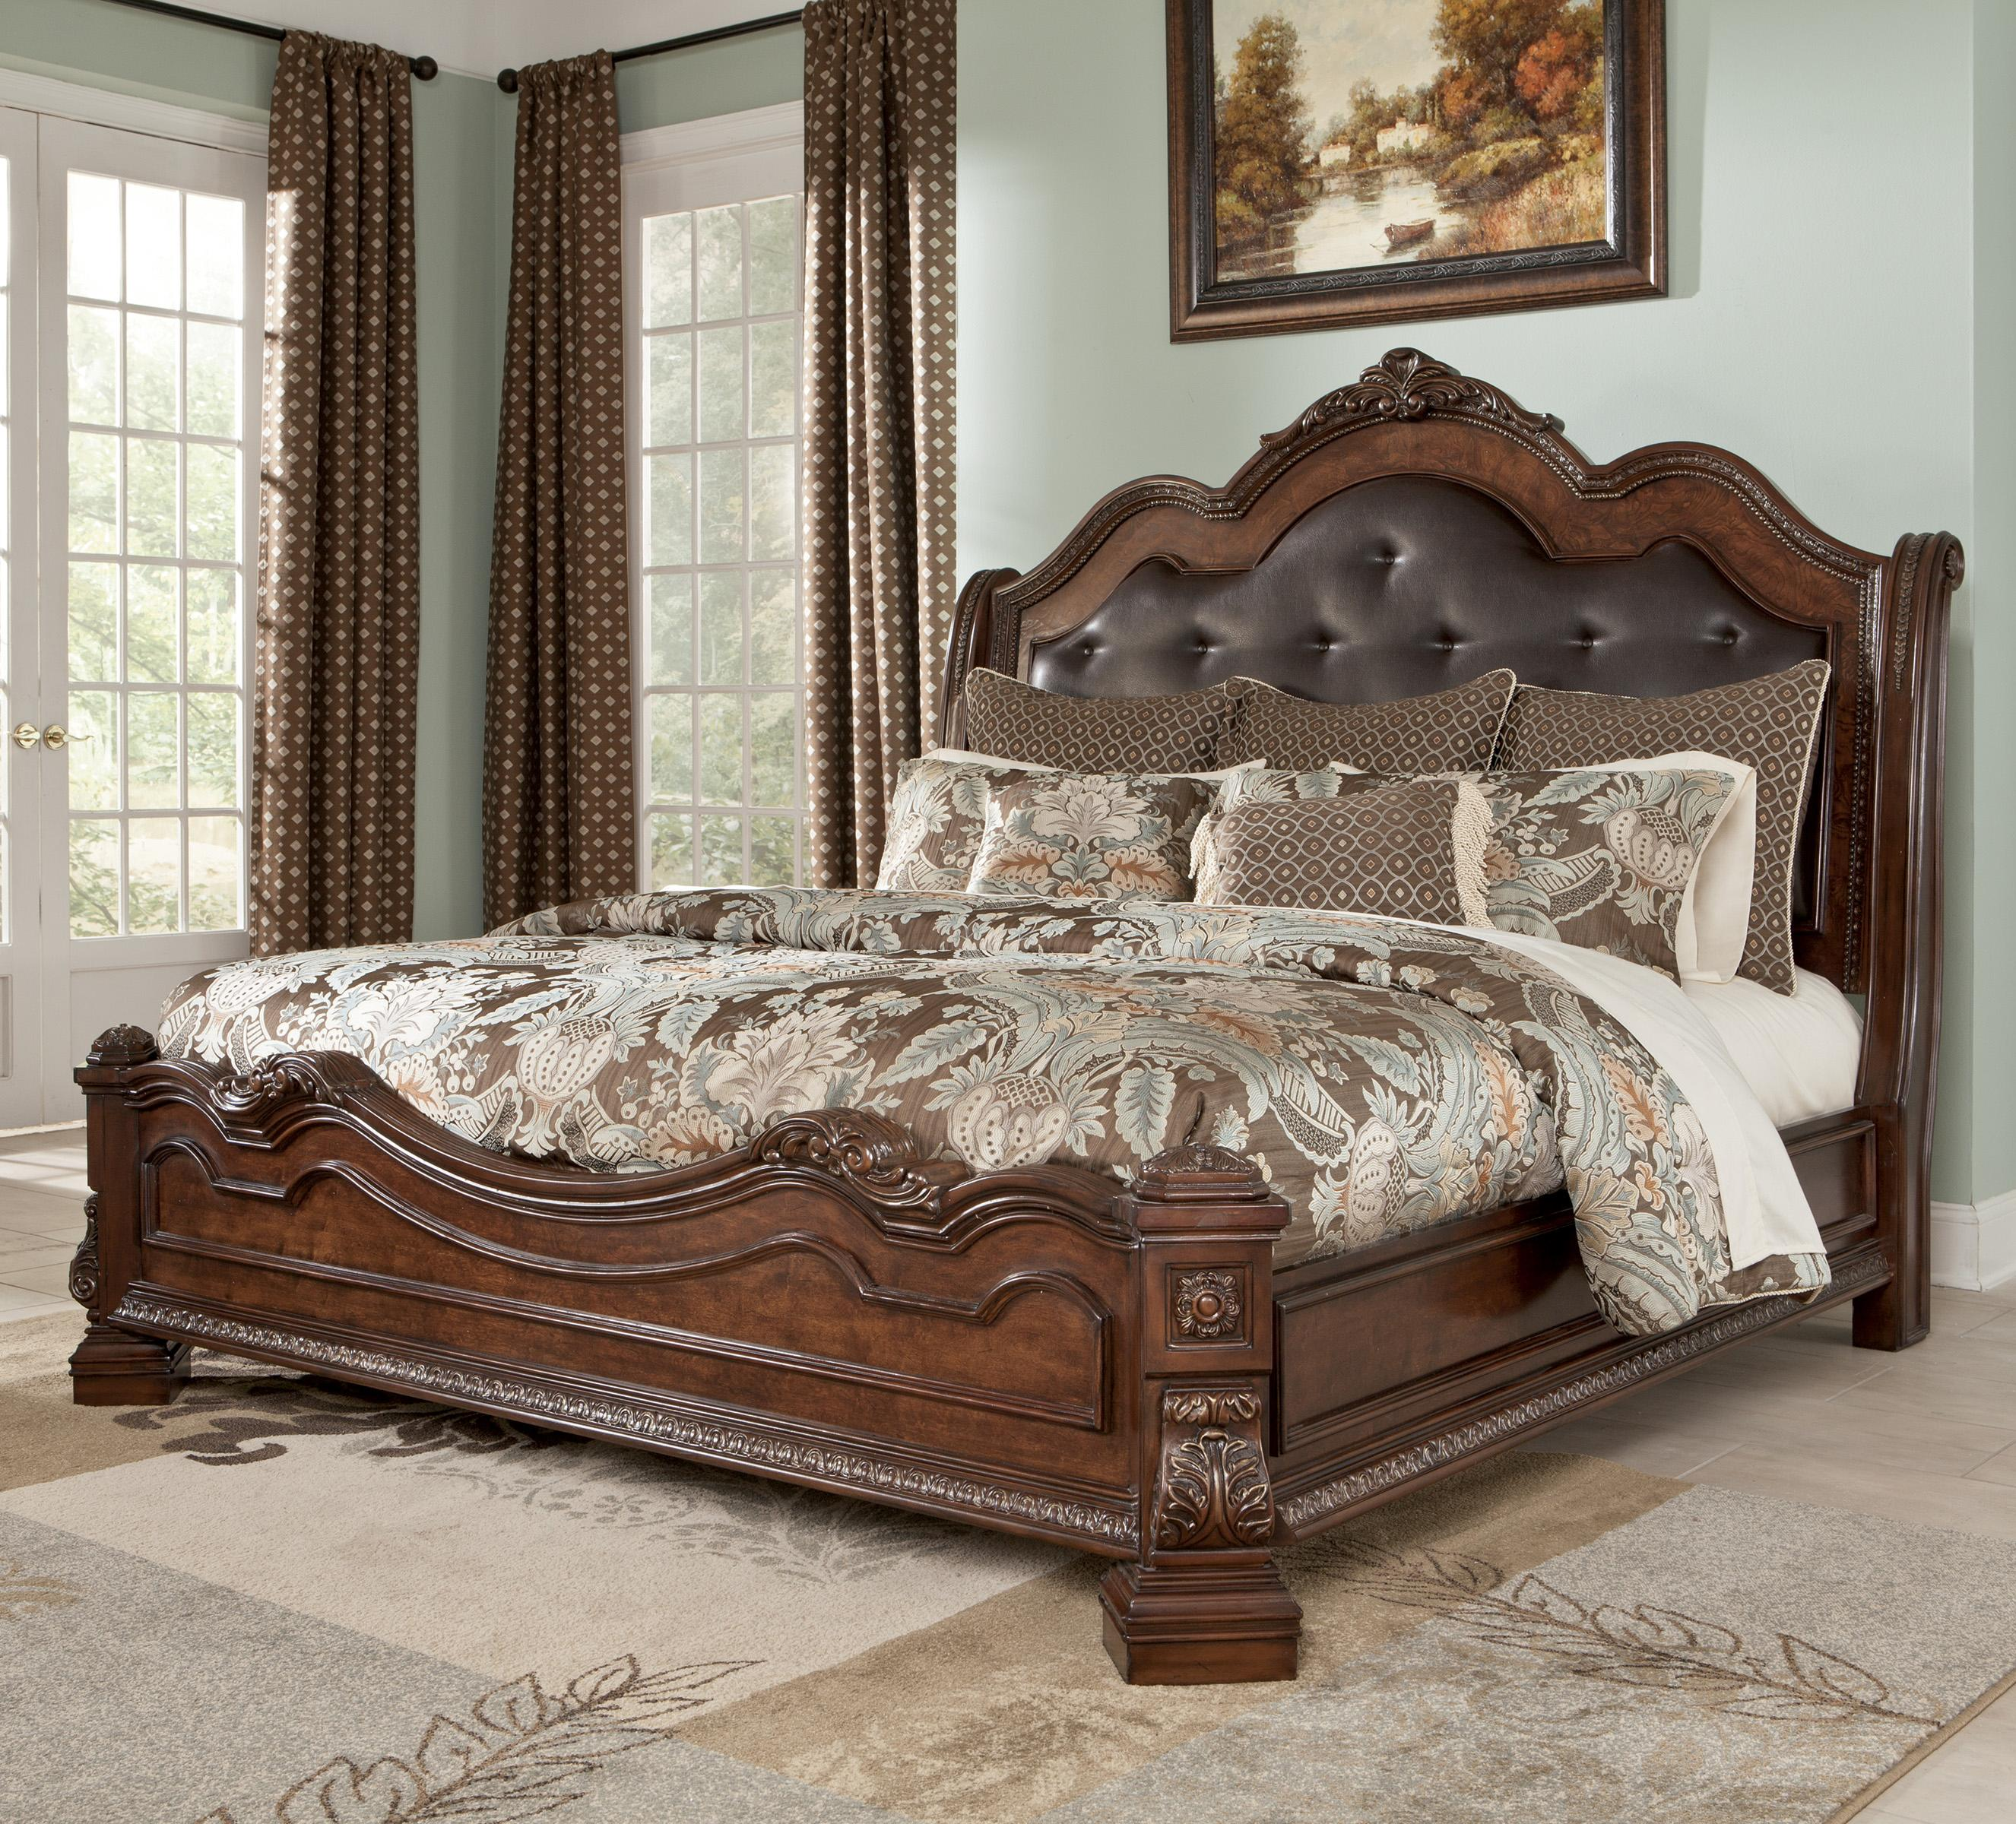 Millennium Ledelle Traditional Queen Bed with Sleigh Headboard